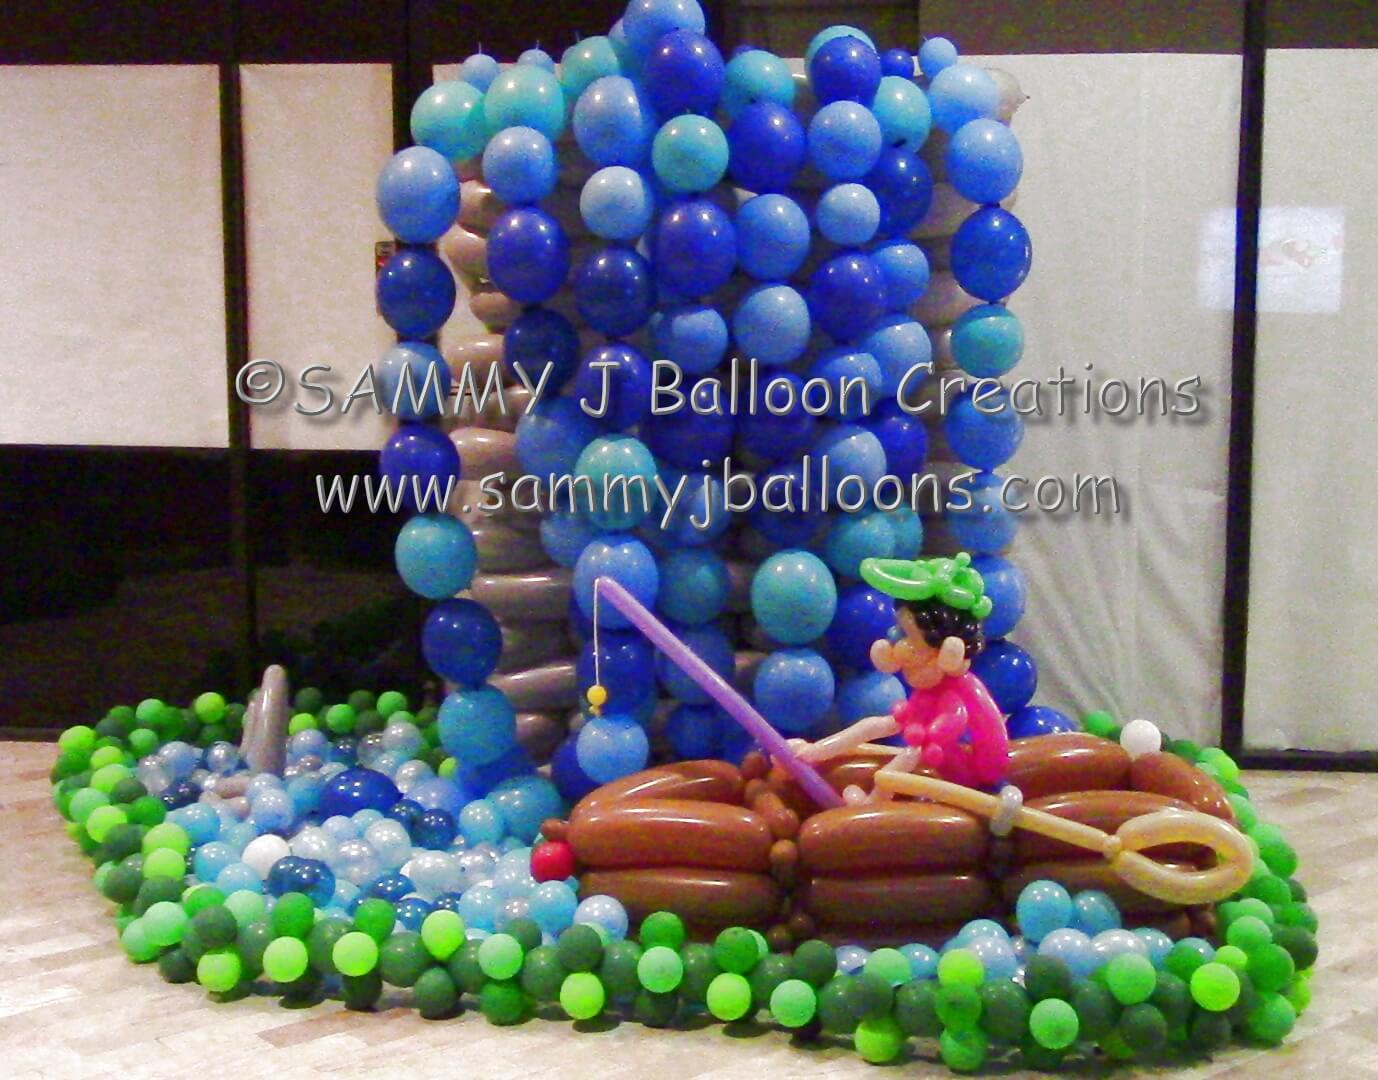 SAMMY J Balloon Creations st louis balloons fisherman pond